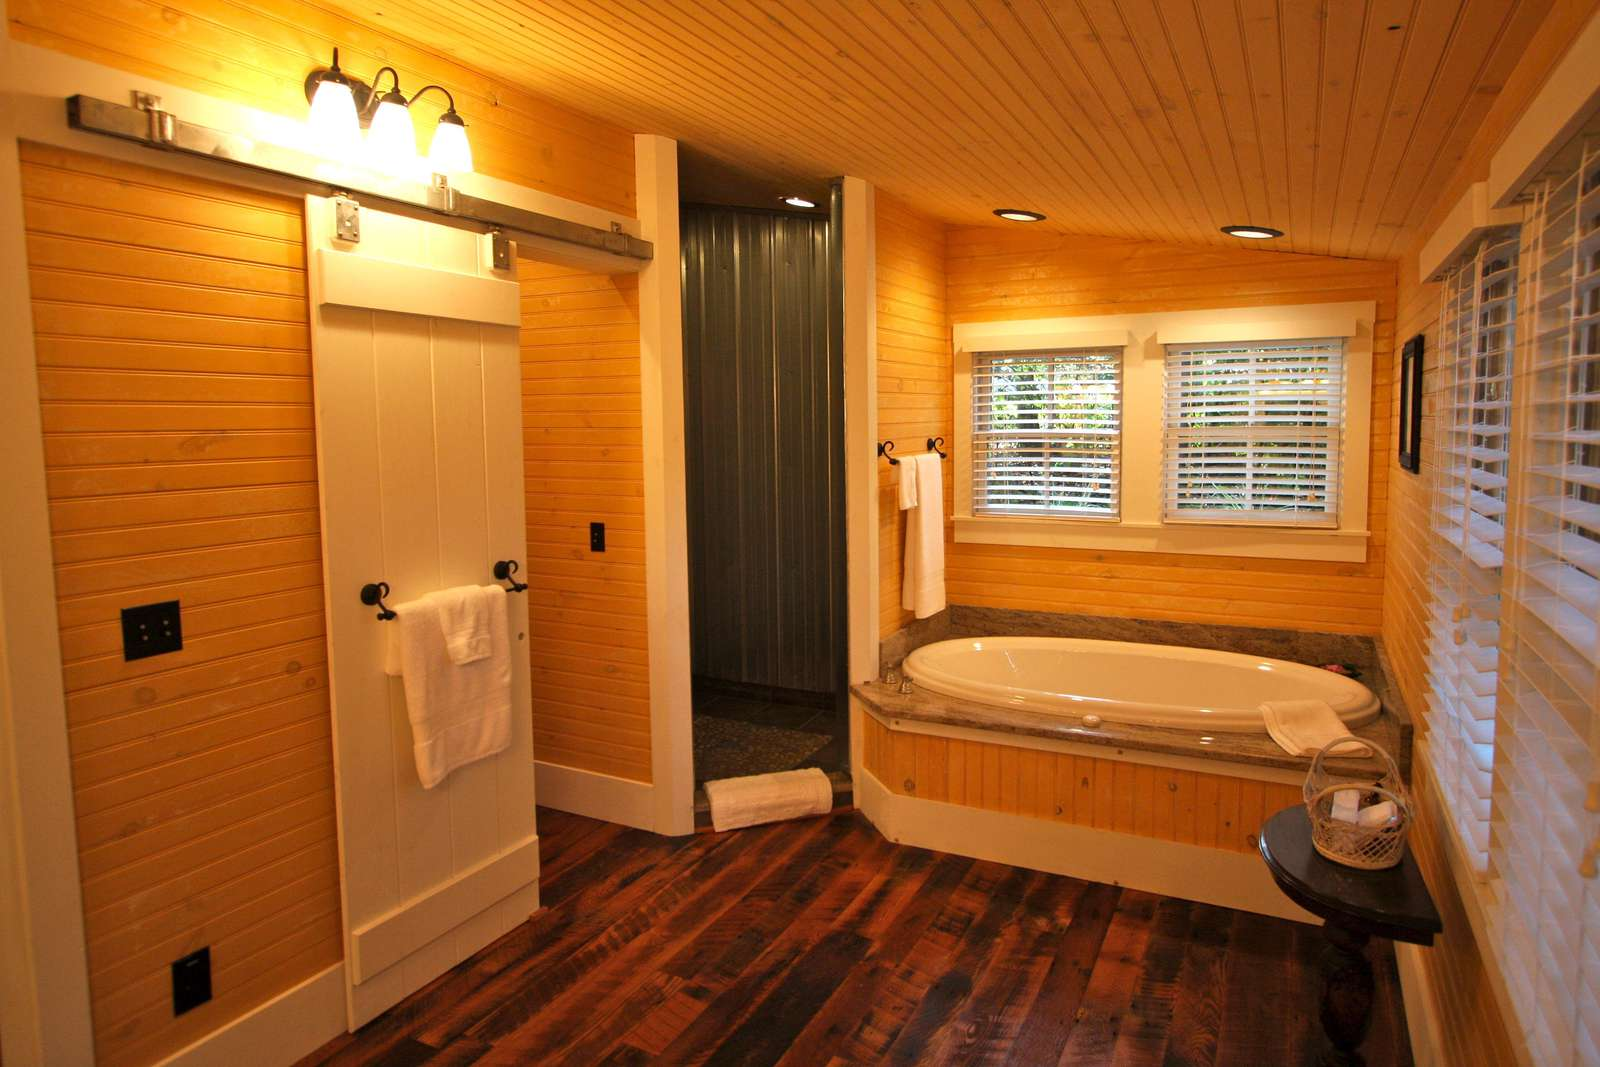 Bathroom with shower, jacuzzi tub and small room for the toilet